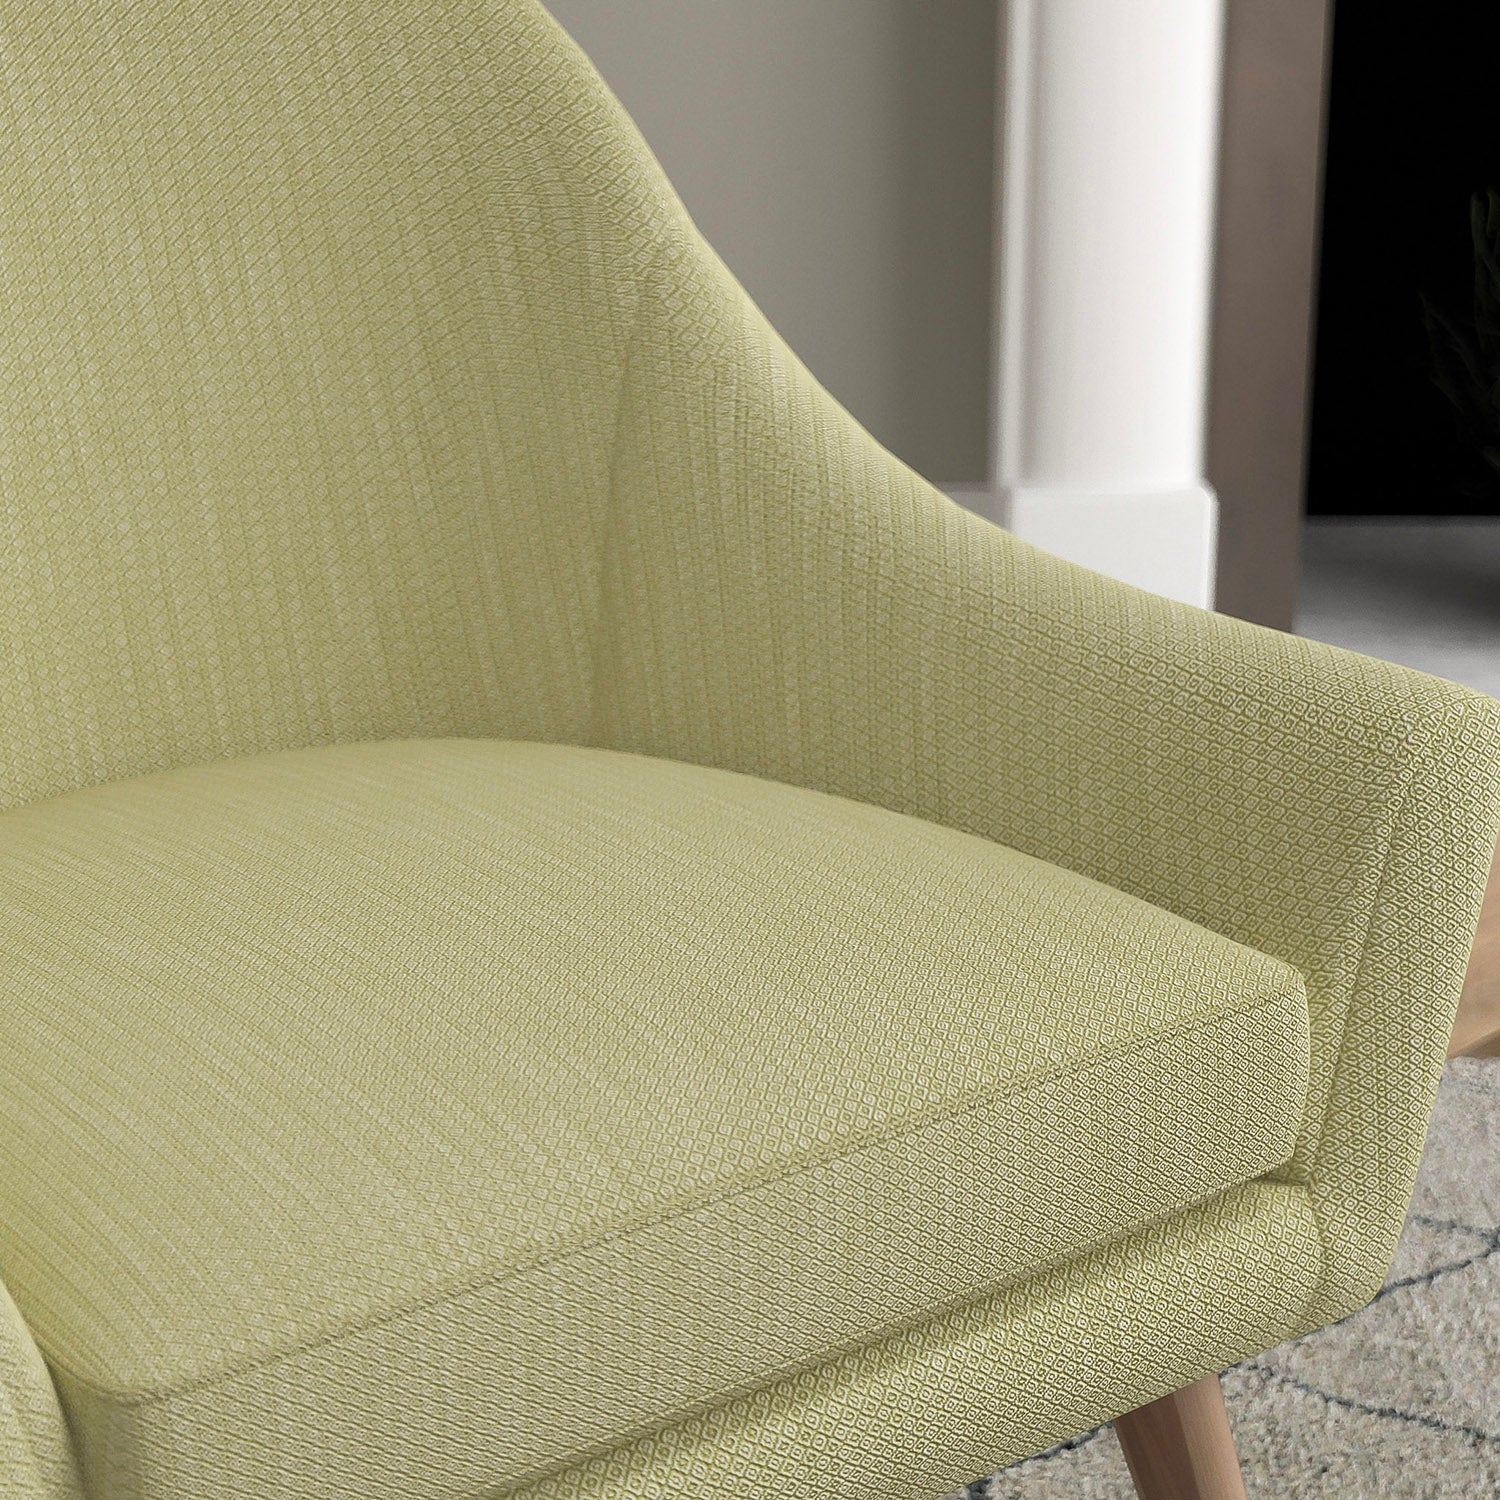 Chair with a pear green and neutral upholstery fabric with a small diamond weave fabric